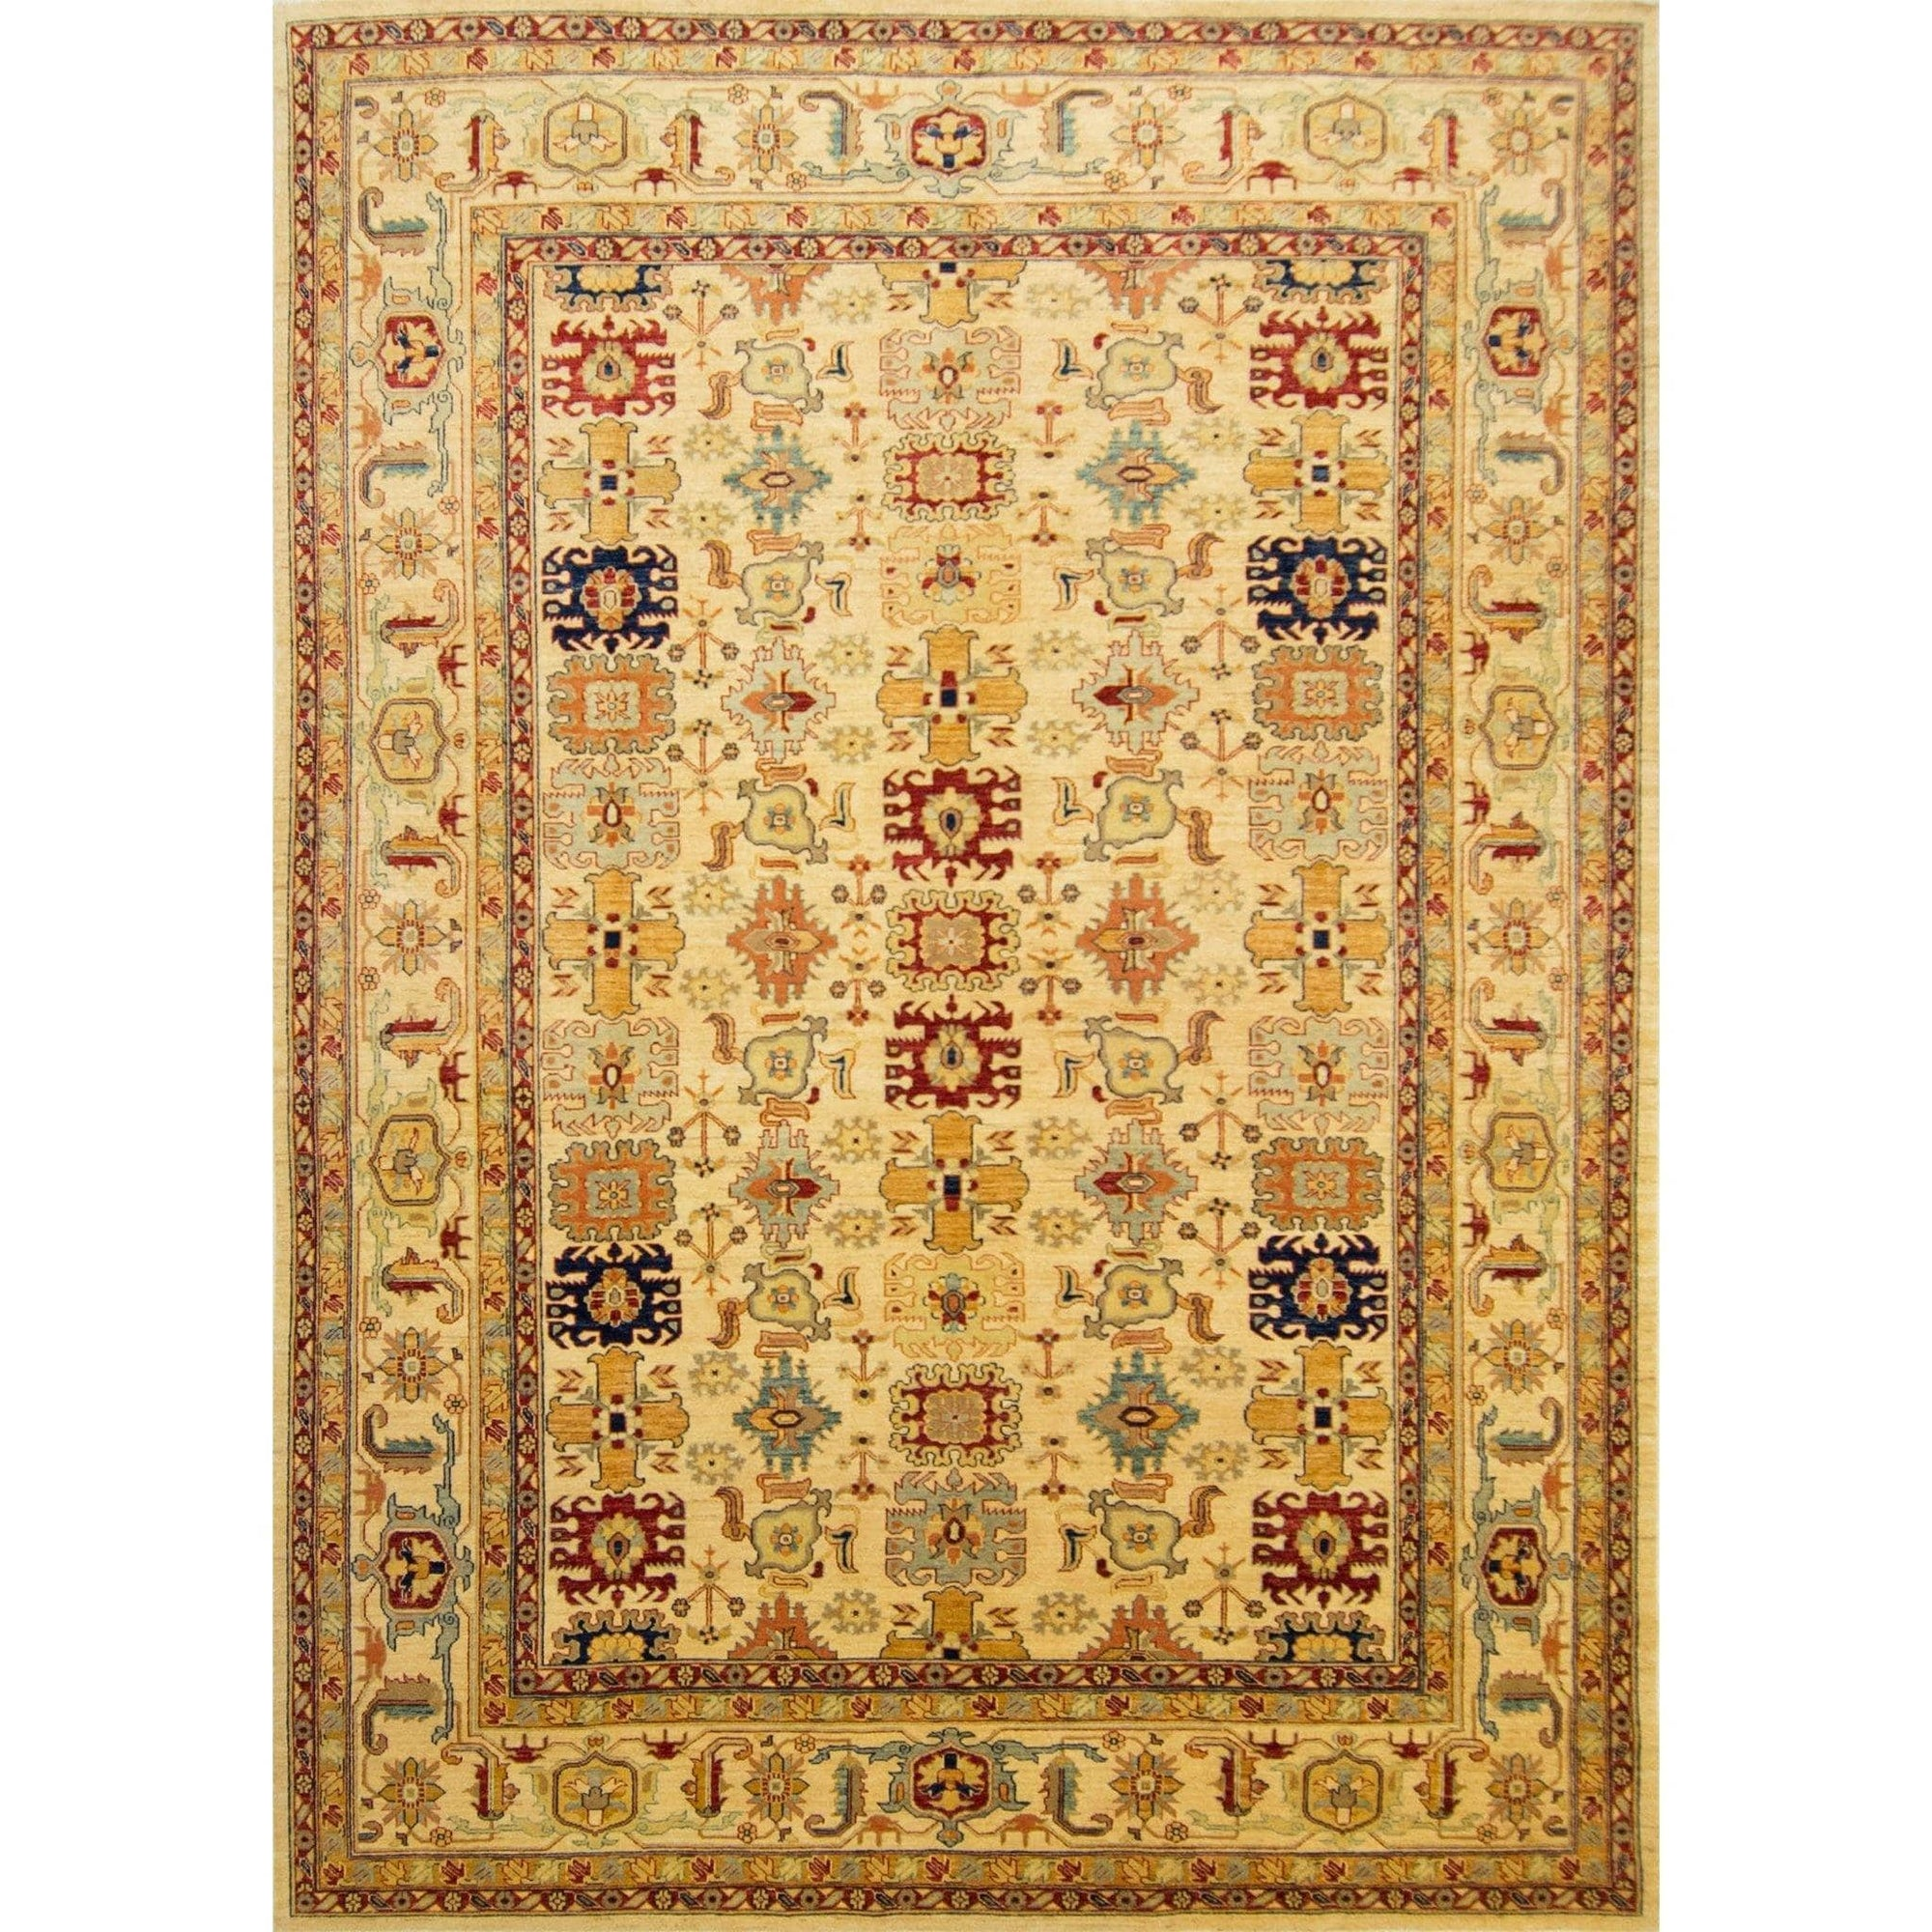 Fine Hand-knotted Wool Heriz Rug 250cm x 357cm Persian-Rug | House-of-Haghi | NewMarket | Auckland | NZ | Handmade Persian Rugs | Hand Knotted Persian Rugs